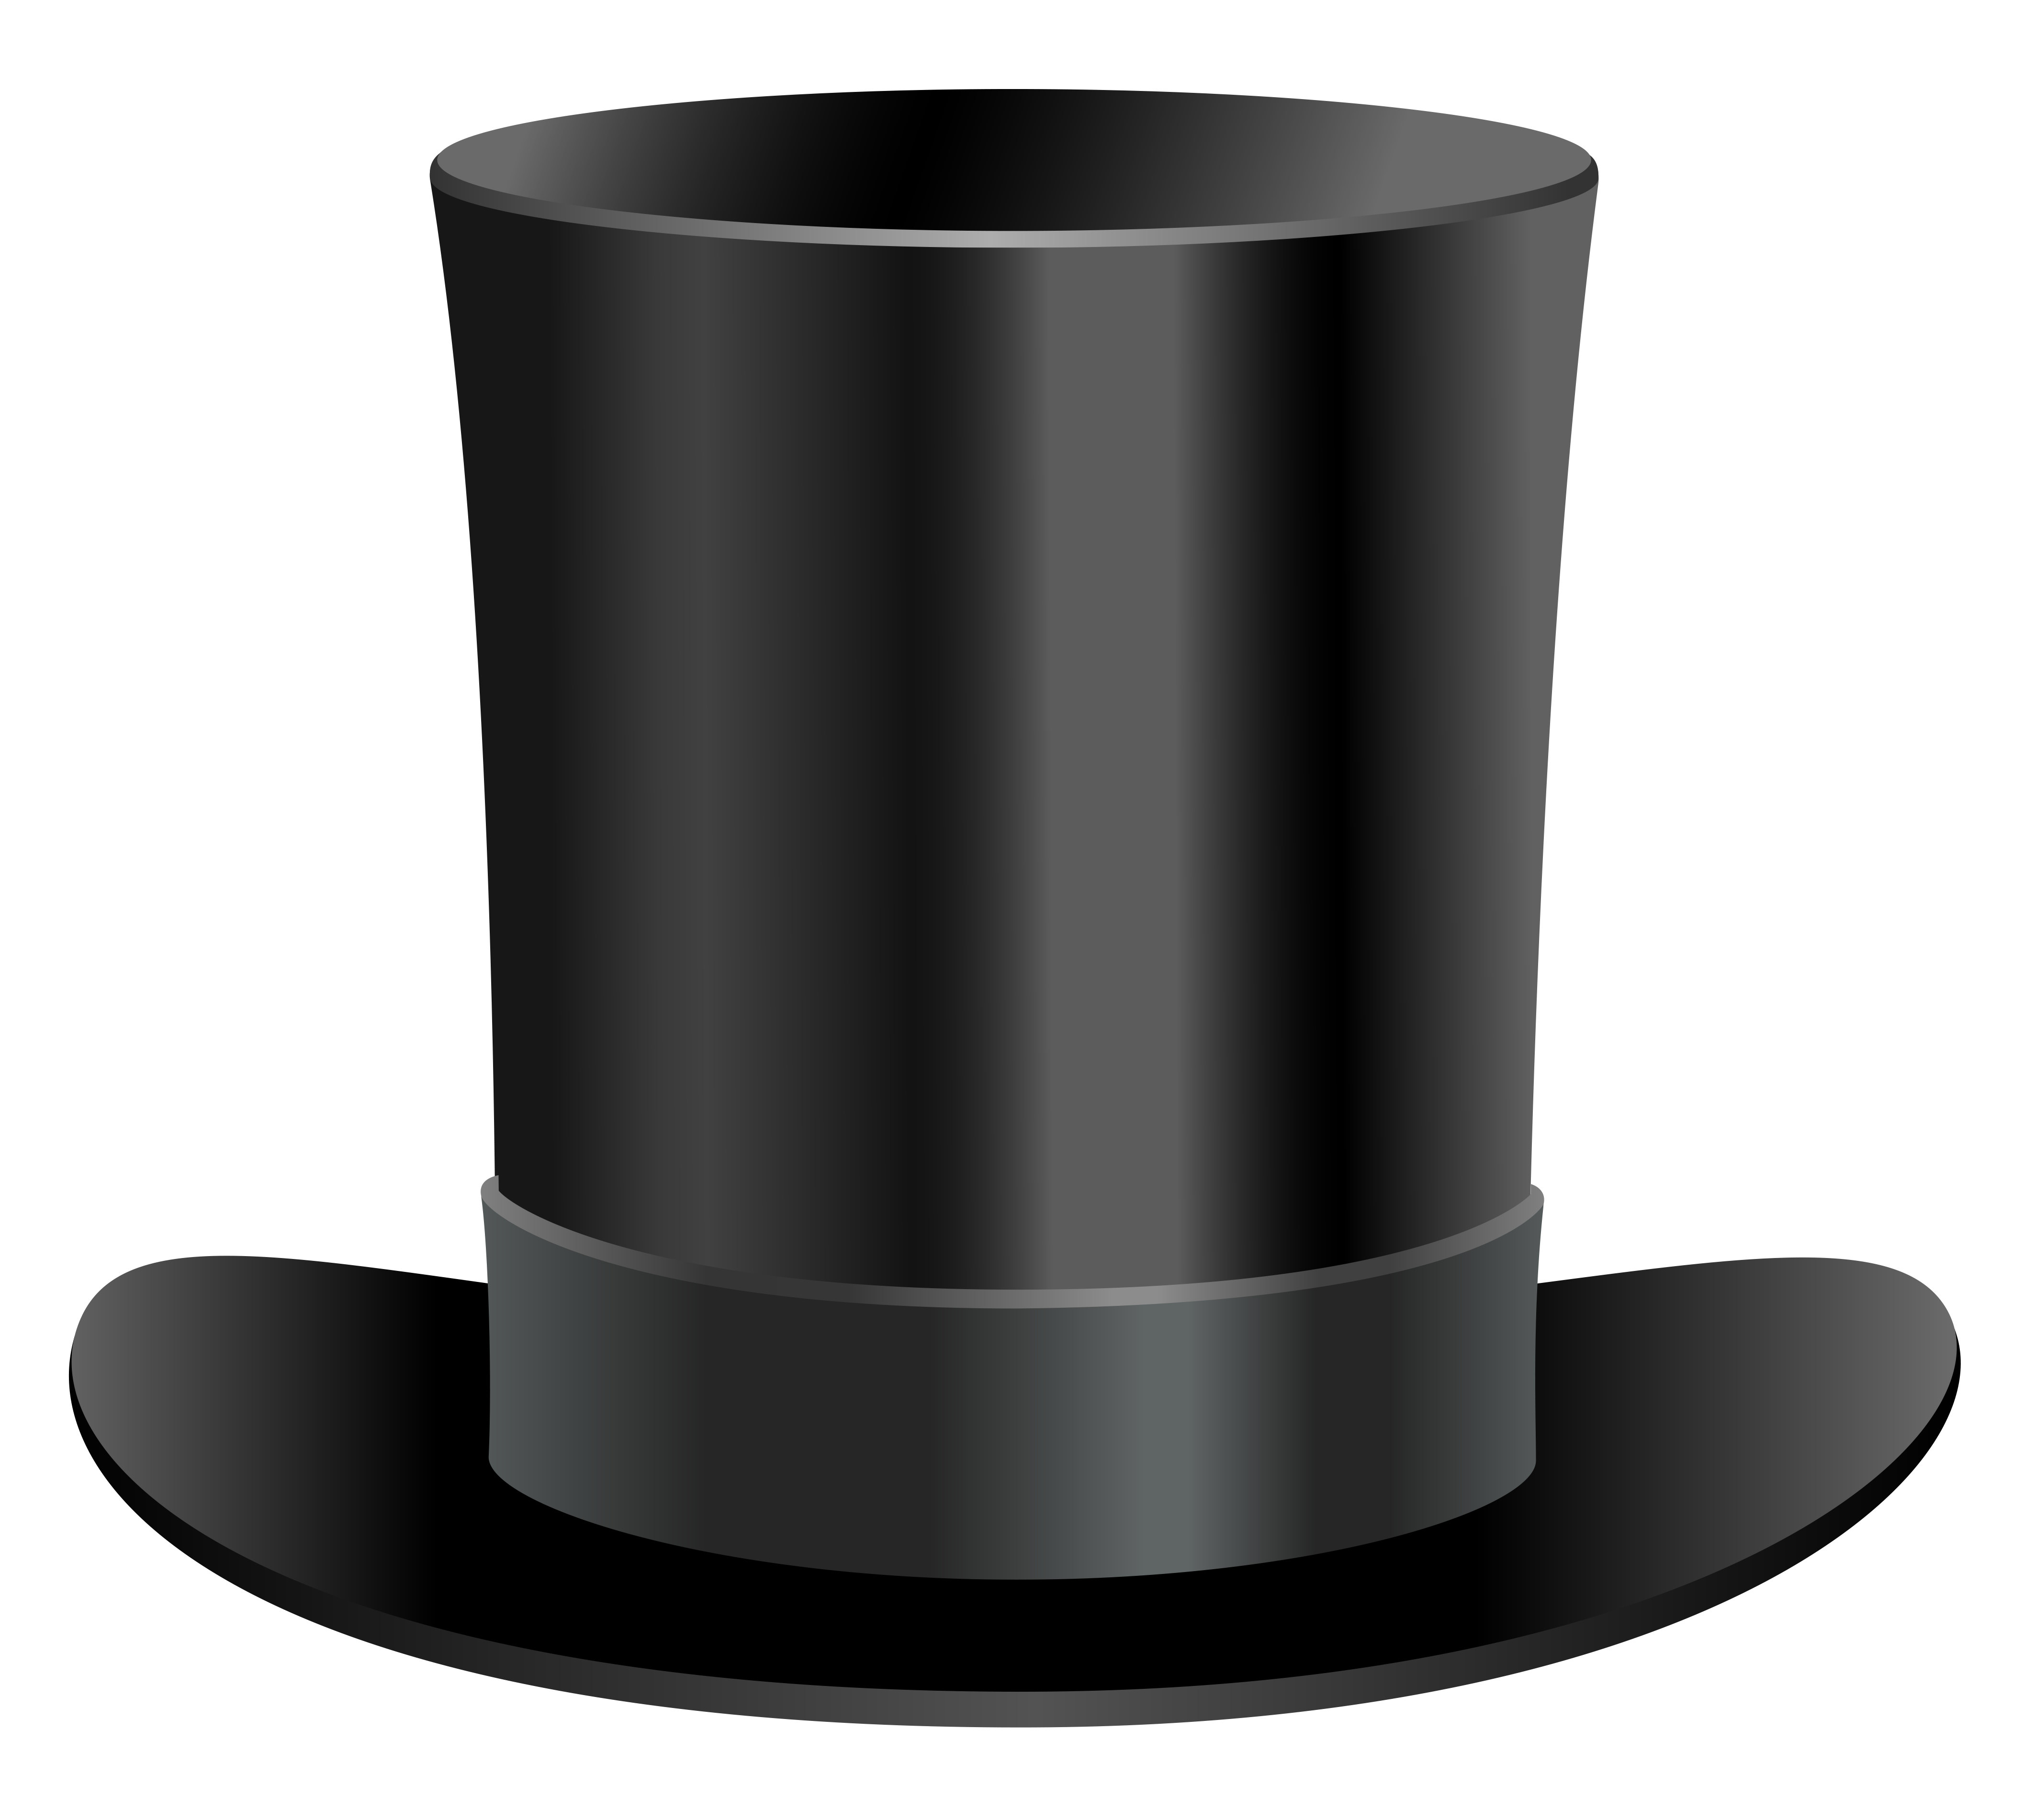 Top Hat clipart transparent View Black  Quality Top